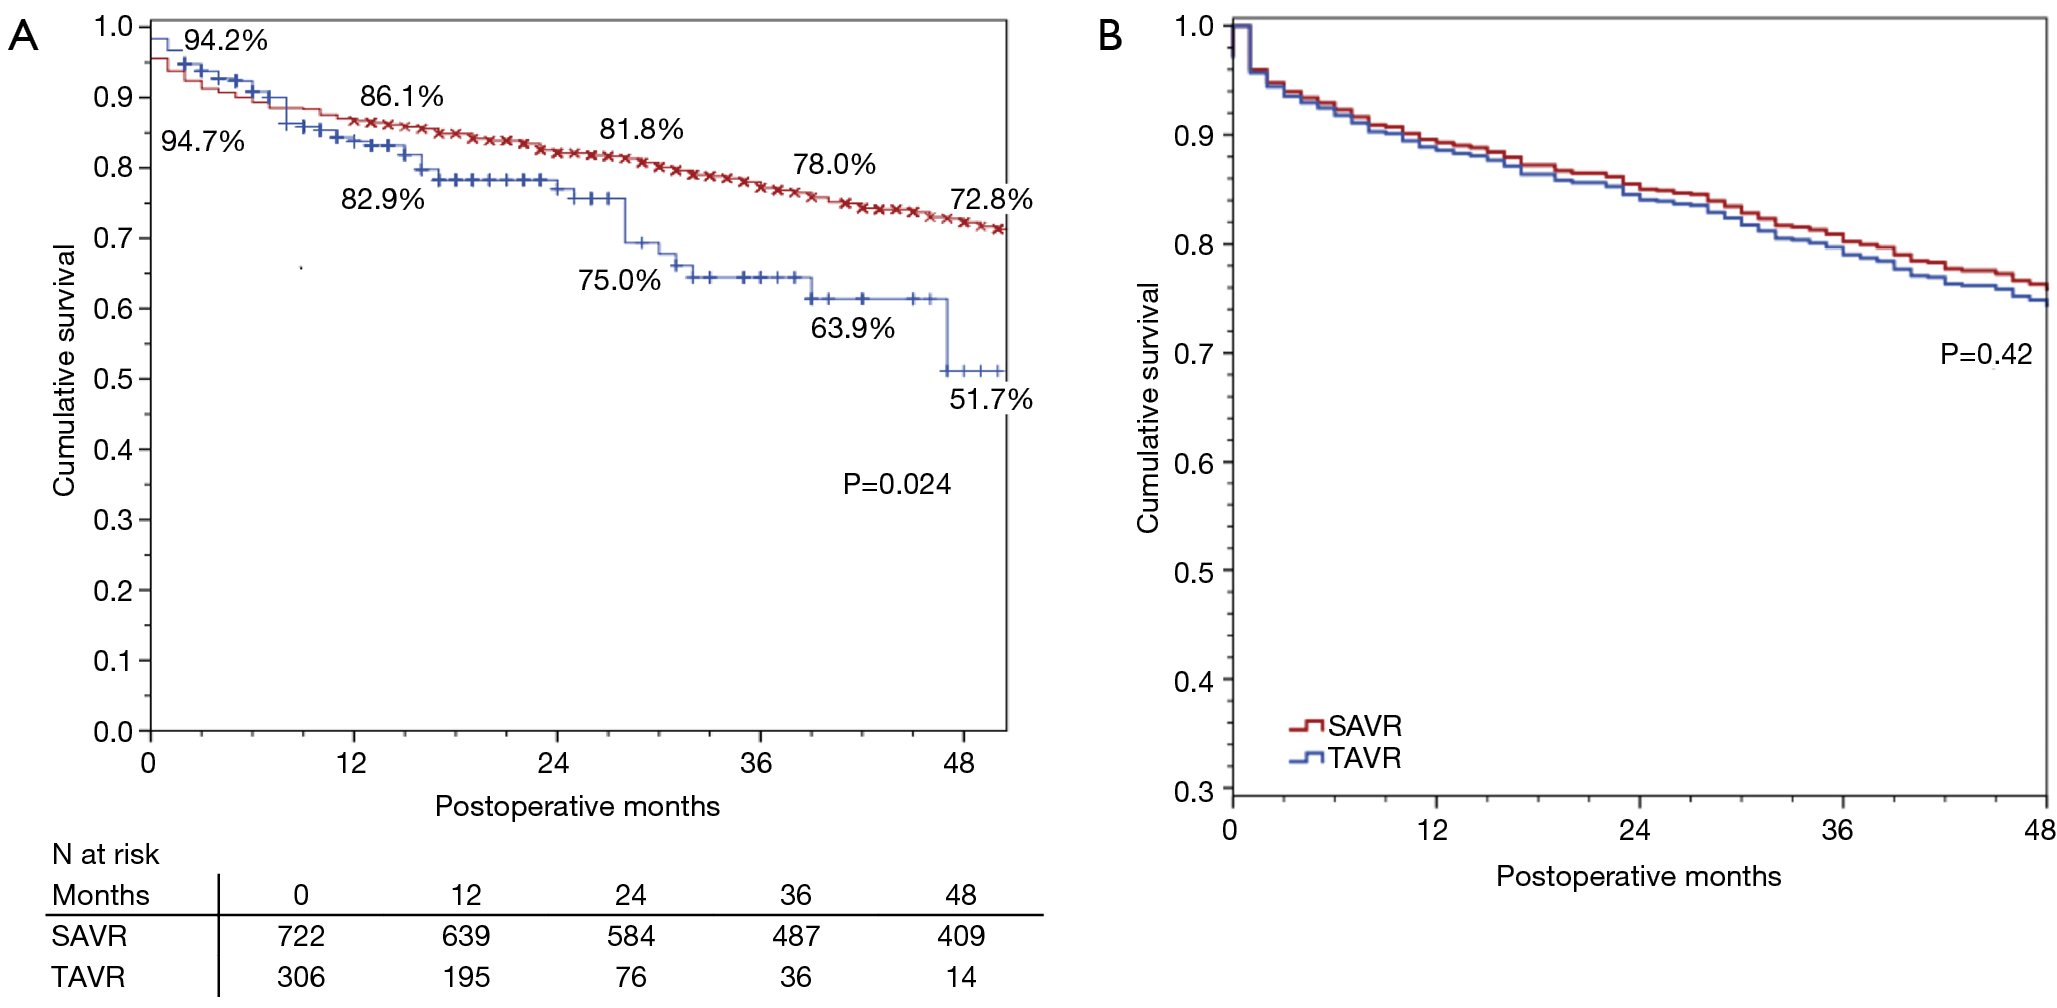 Outcomes of surgical and transcatheter aortic valve